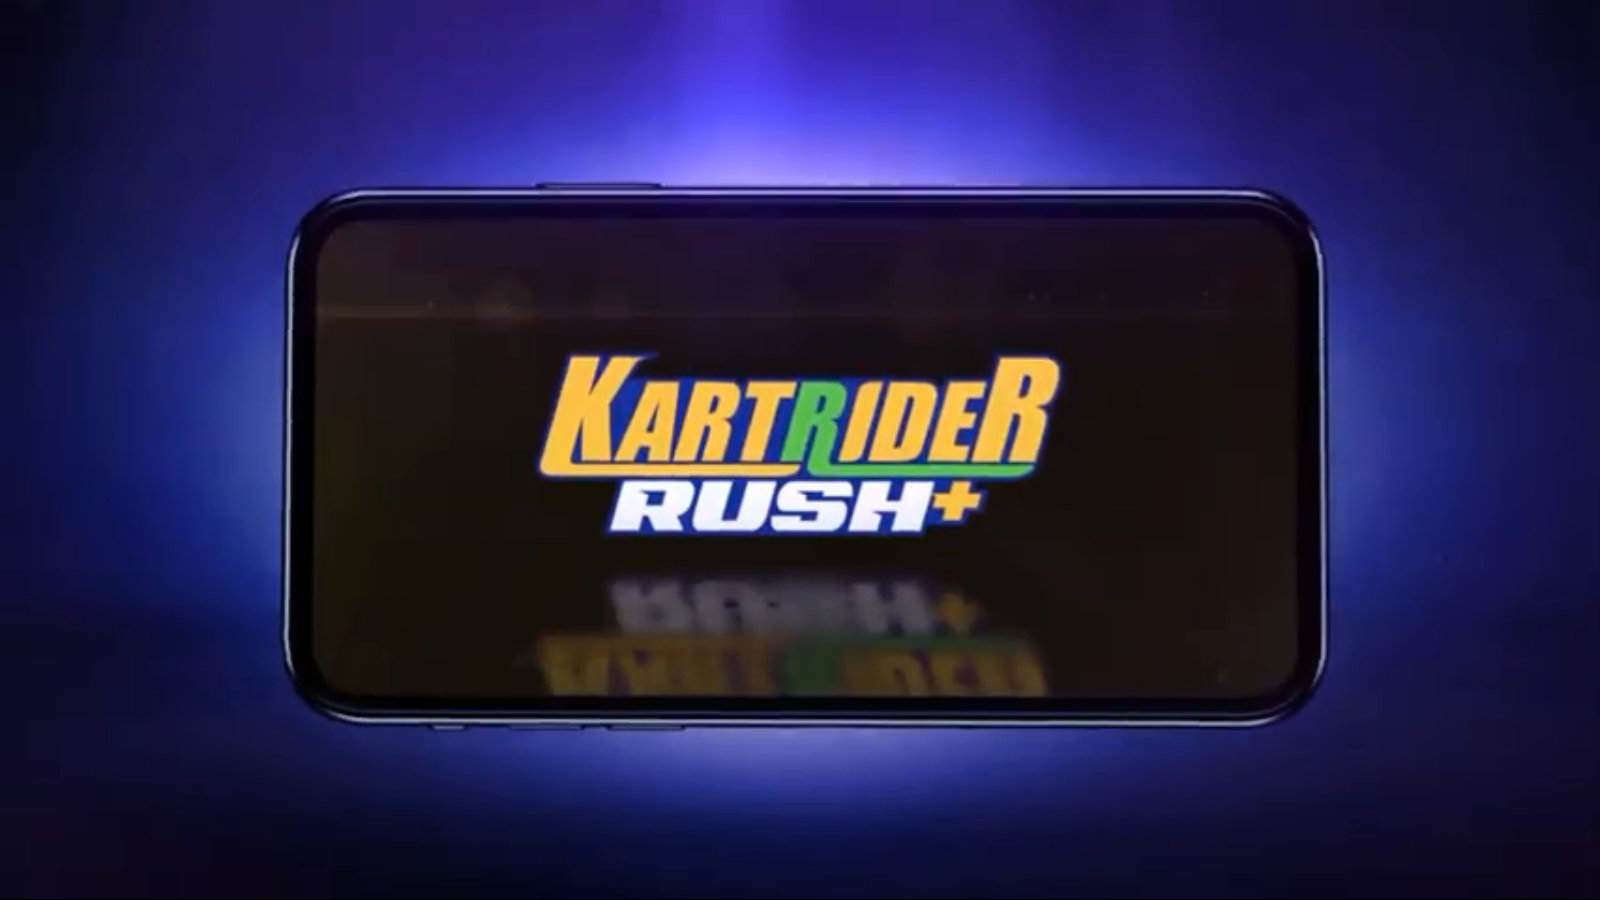 KartRider Rush+ Comes to Mobile Devices